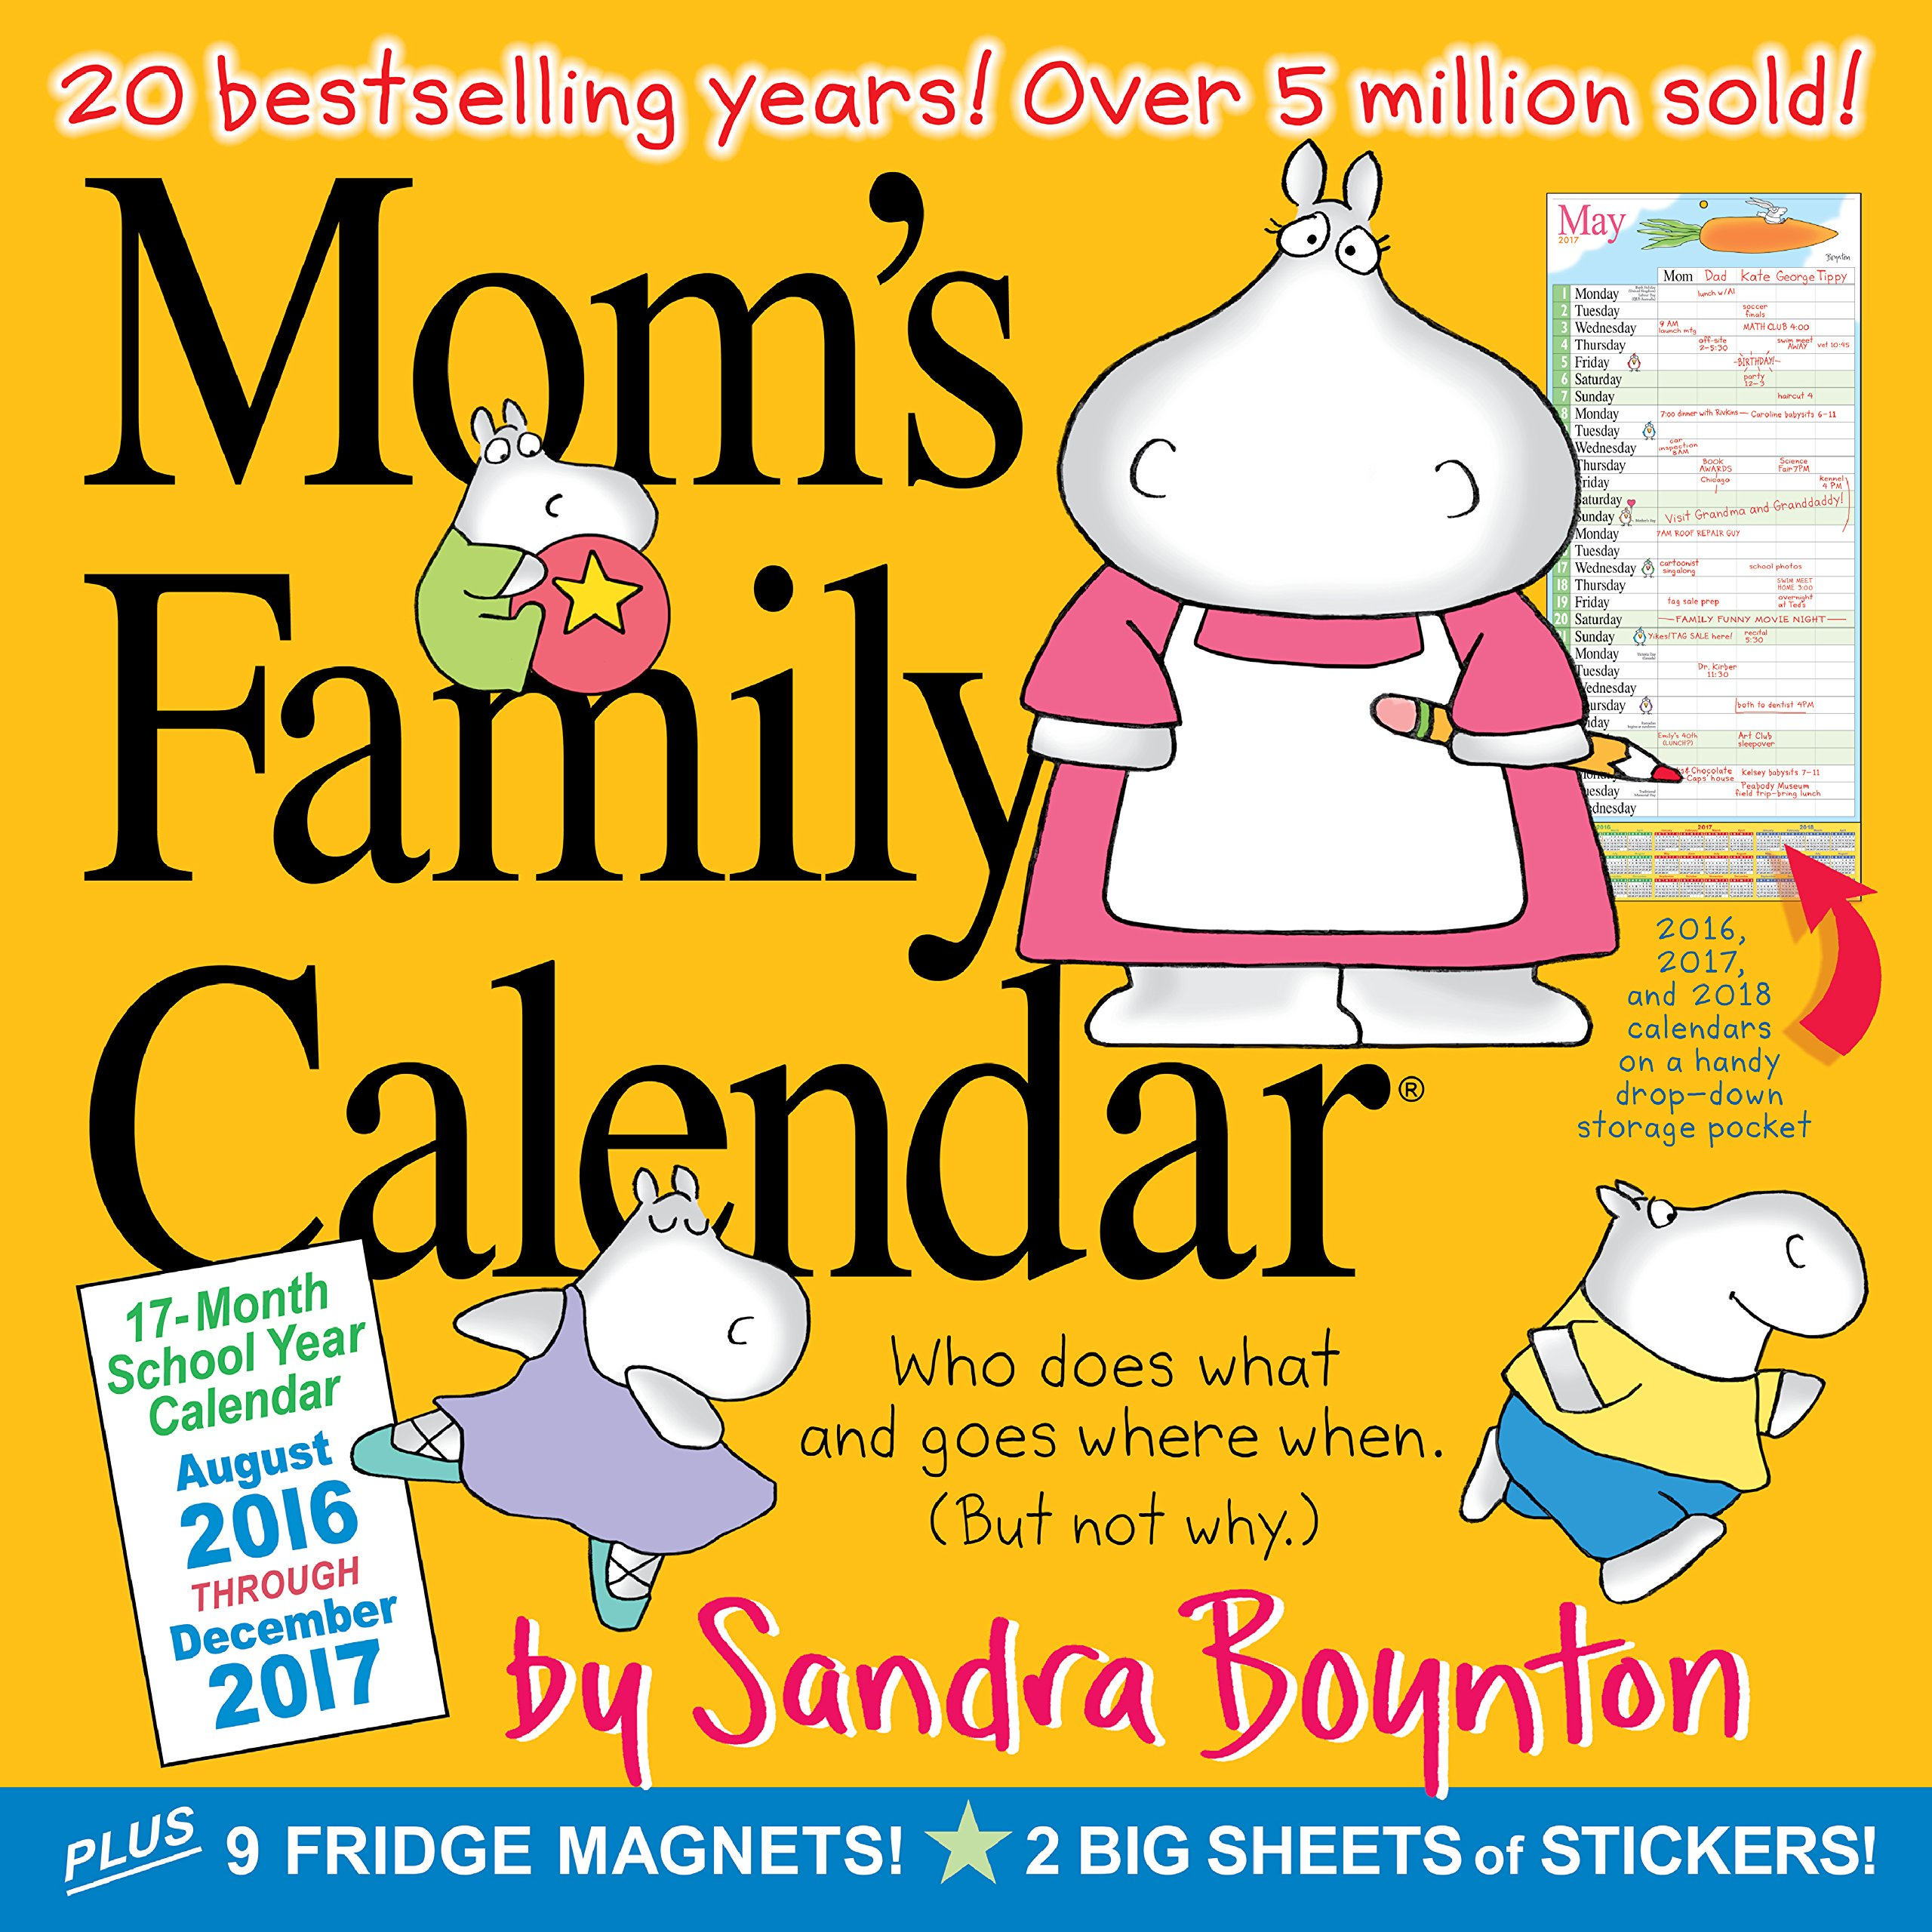 a few days away super specials online for sale We Analyzed 1,757 Reviews To Find THE BEST Family Calendar ...